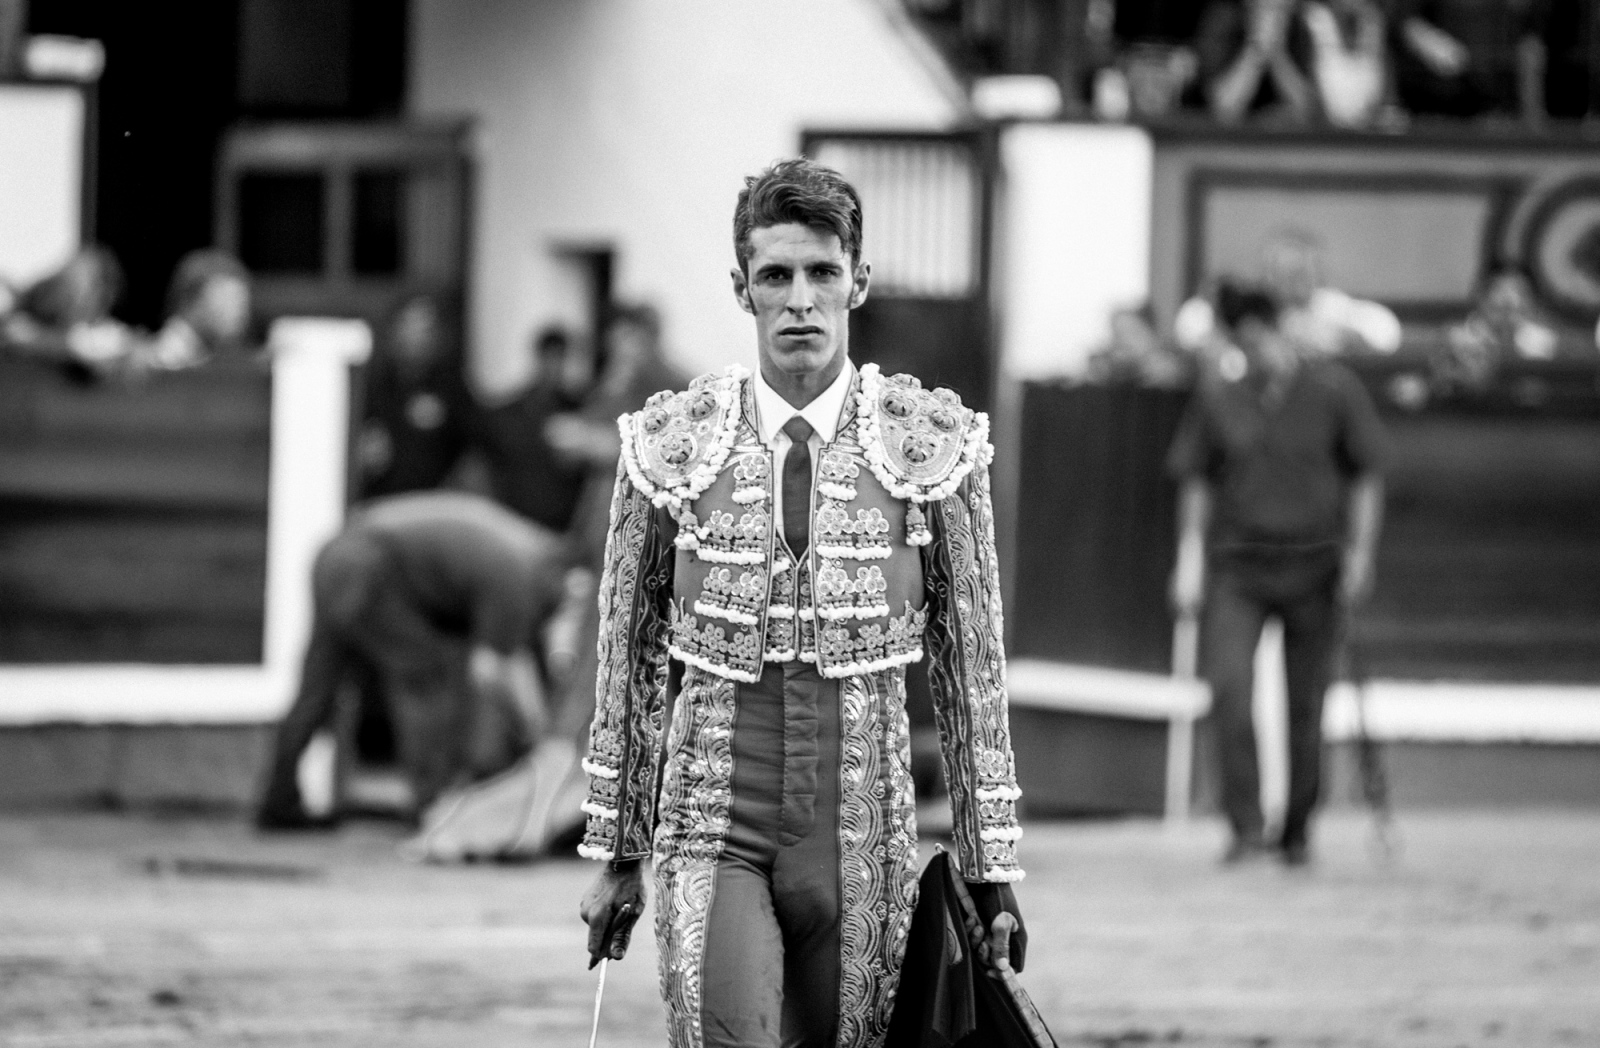 Art and Documentary Photography - Loading Oto_Bullfight_14.jpg